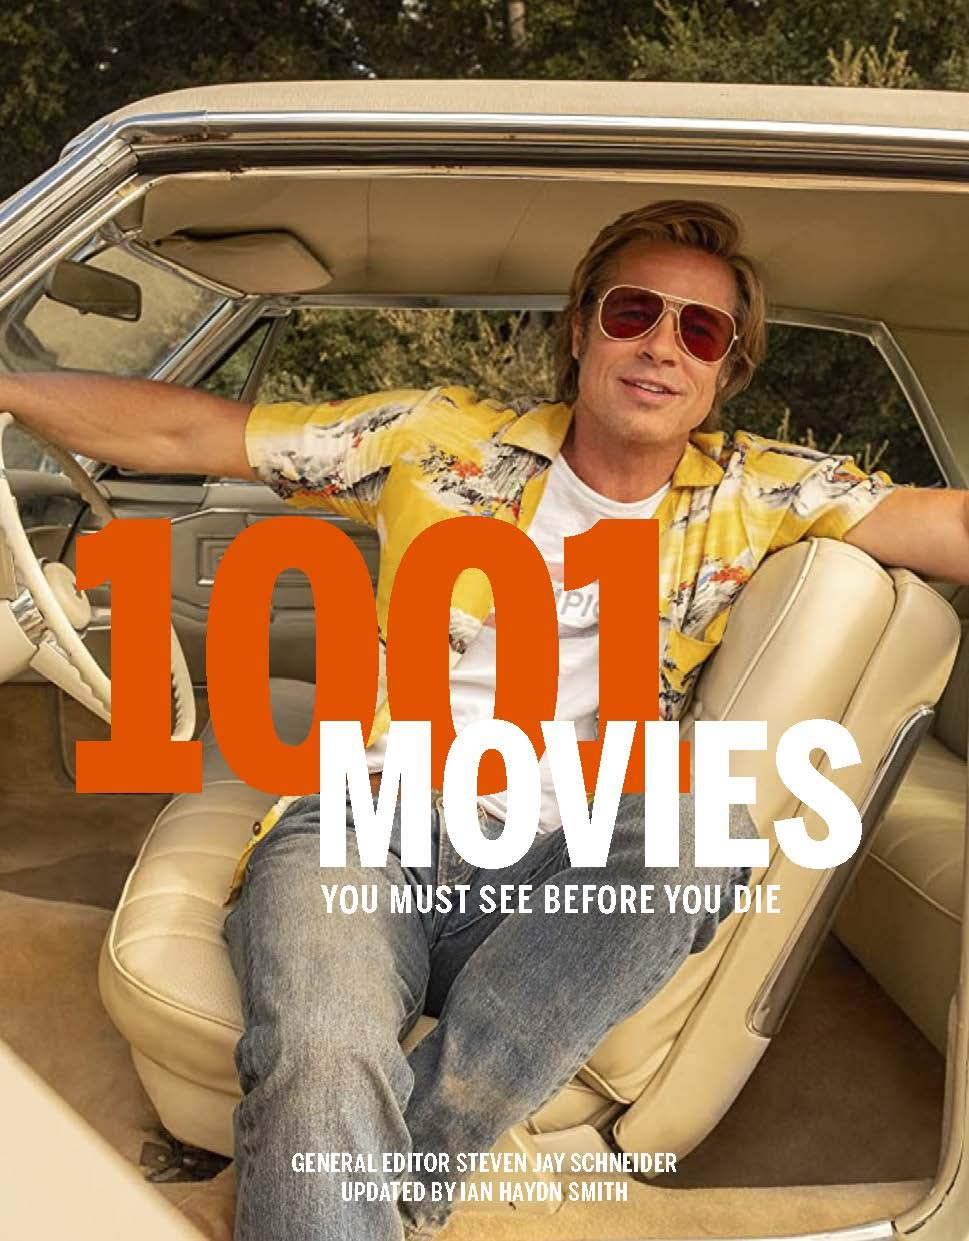 1001 Movies You Must See Before You Die Jay